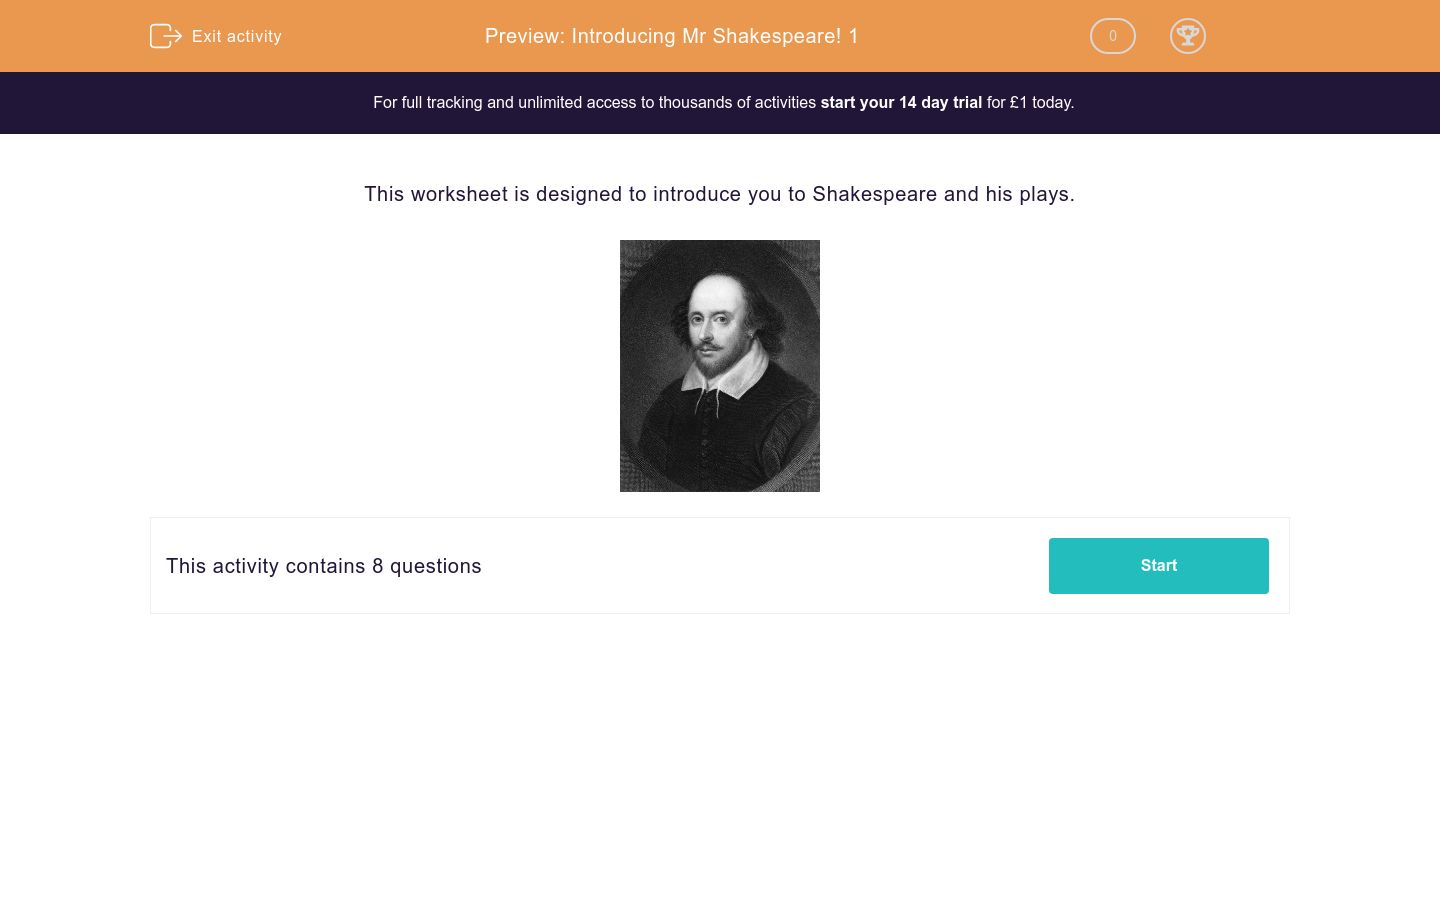 'Introducing Mr Shakespeare! 1' worksheet